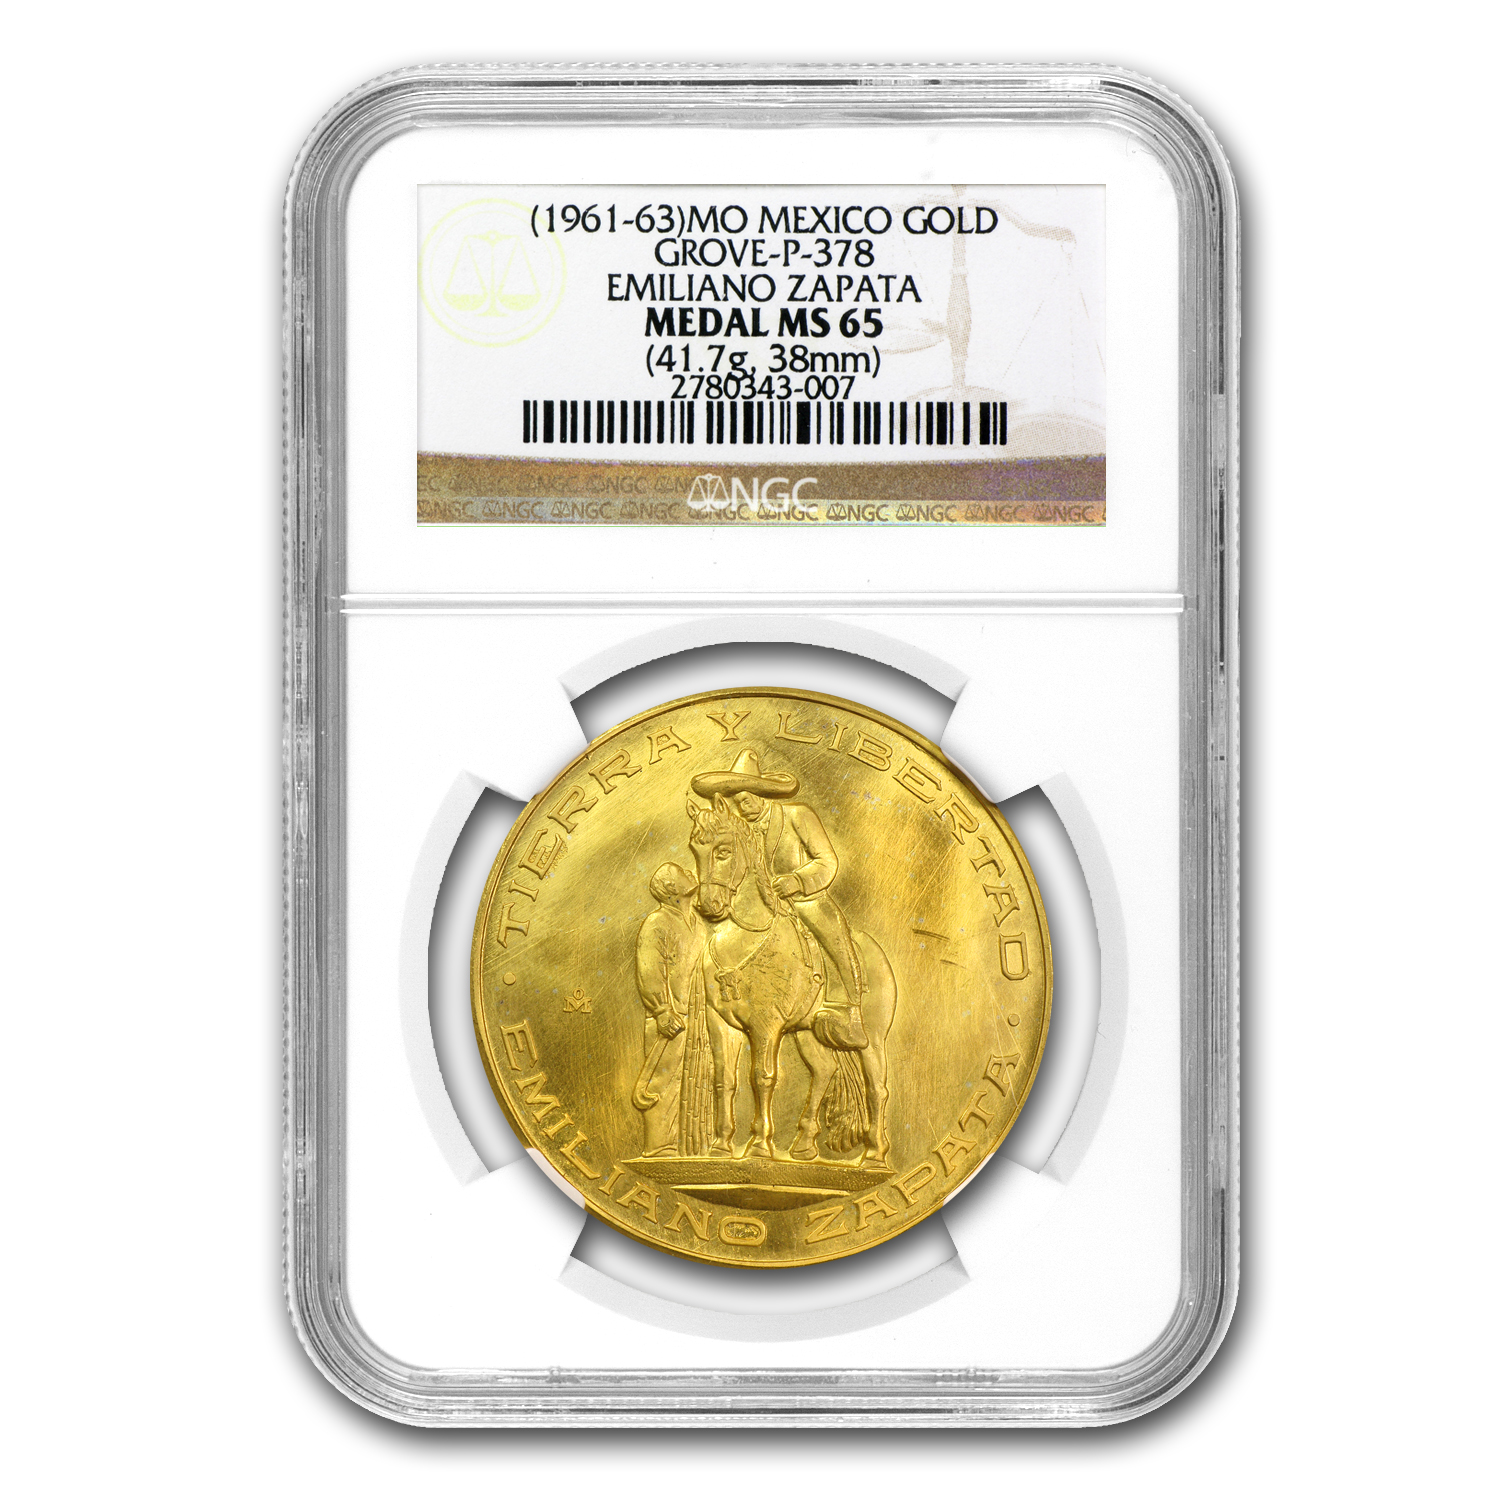 (1961-63) Mexico Gold Emiliano Zapata Medal MS-65 NGC